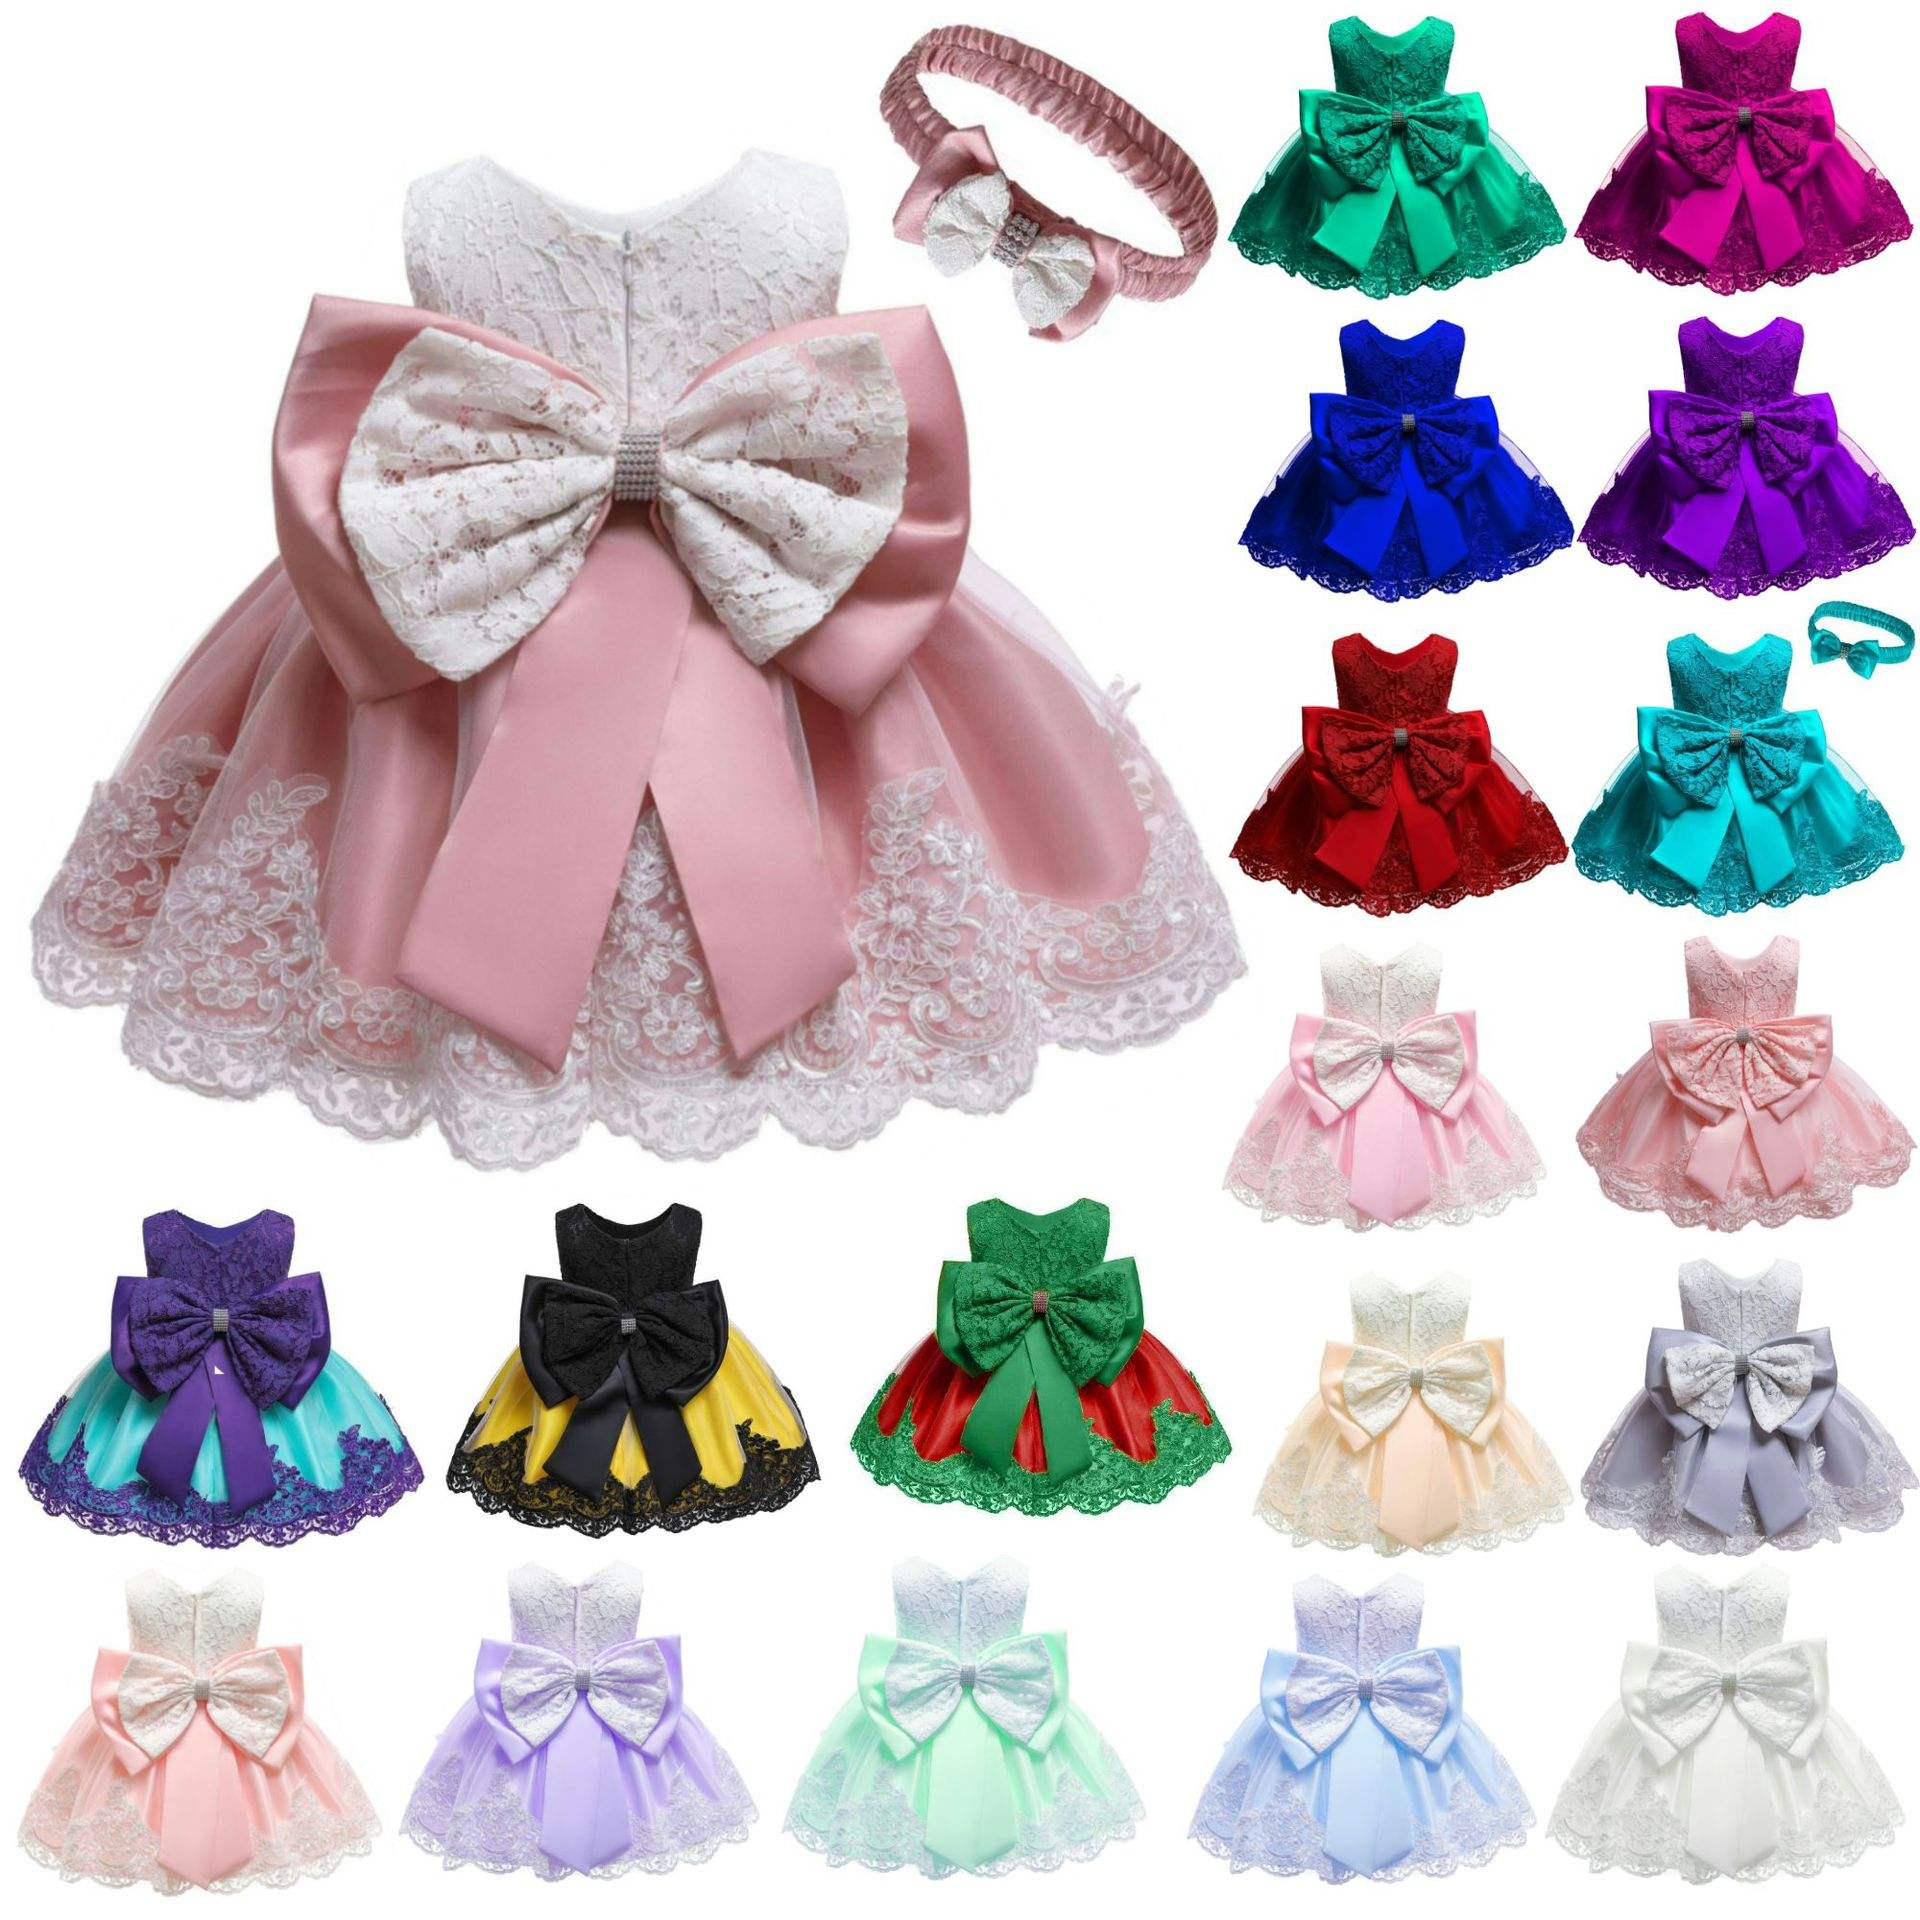 2019 lace 3years Princess flower evening children clothes new design baby party girls dress